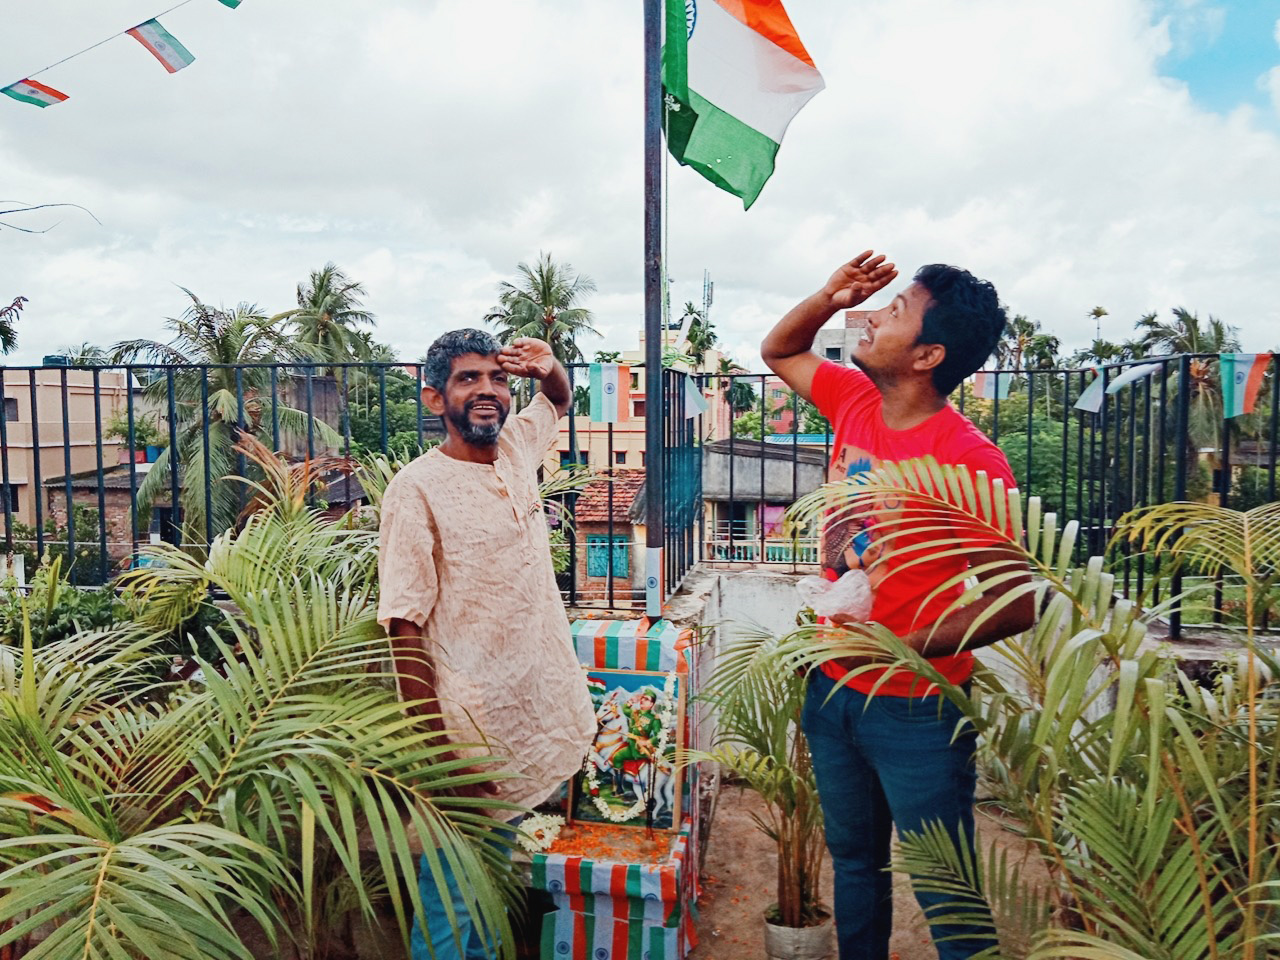 shuktara home for people with disabilities celebrates Independence Day